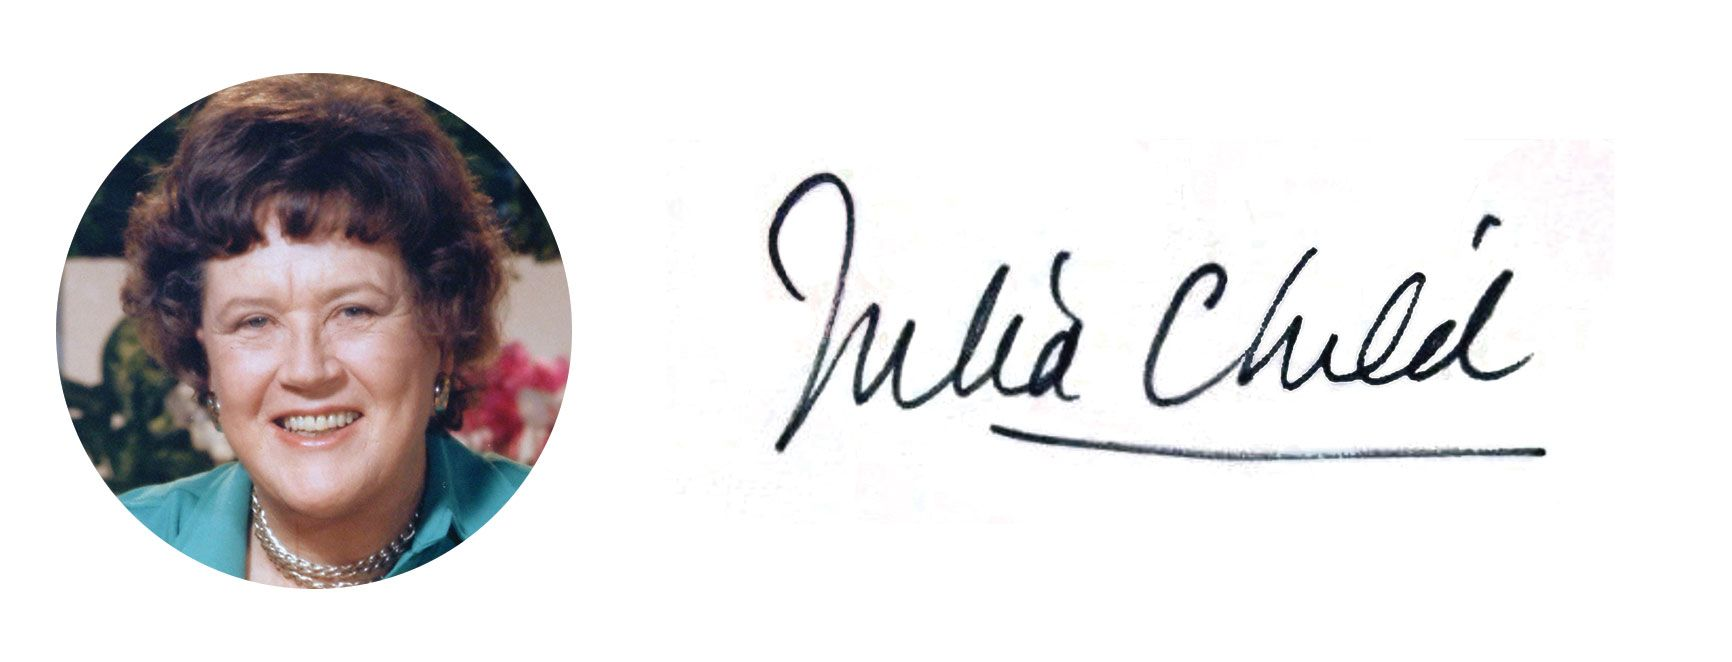 What These Famous Chef's Signatures Say About Their Personalities